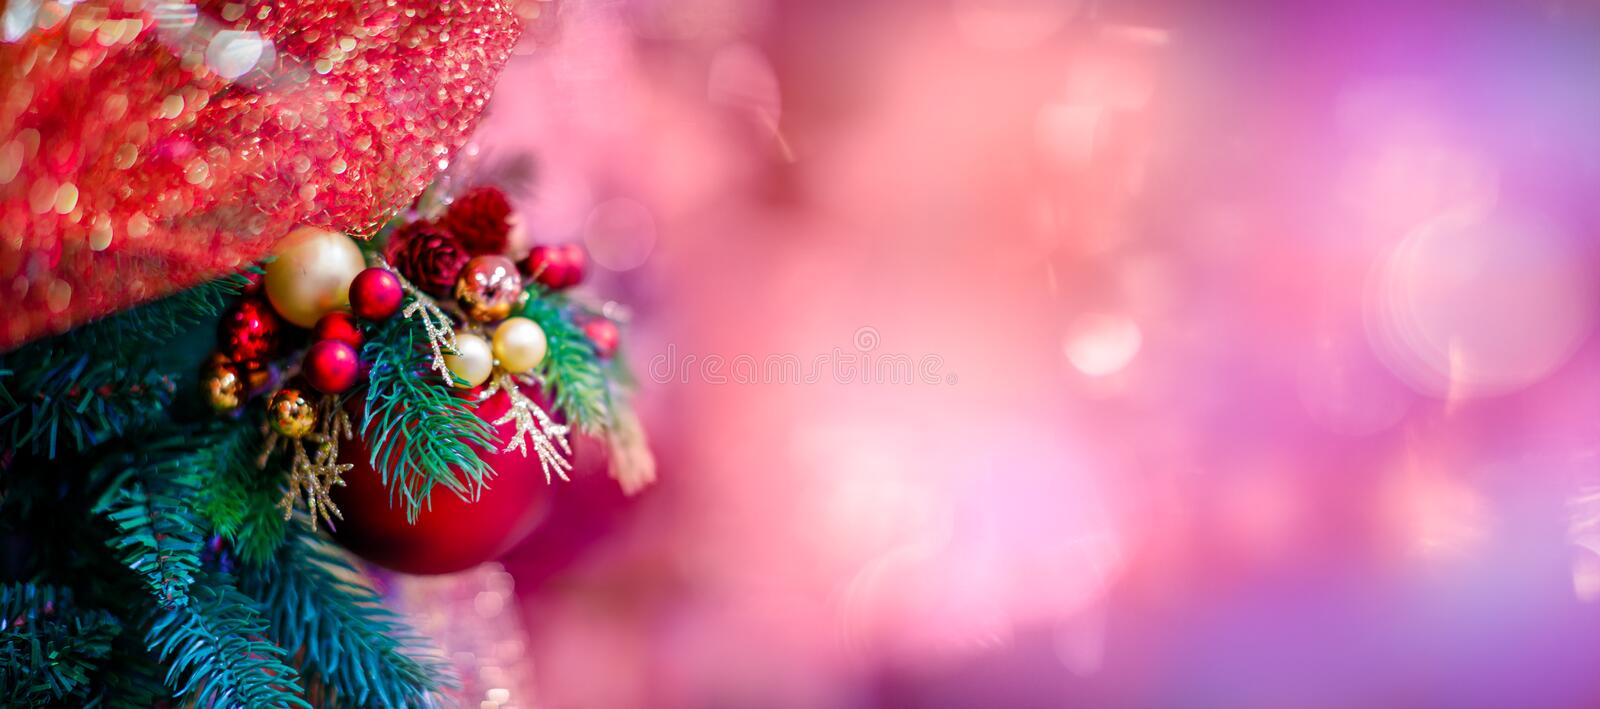 Red hanging ball ornament for Christmas tree. Shiny light flare Merry Xmas decoration background with copy space for. Text message or logo. Social or digital stock image